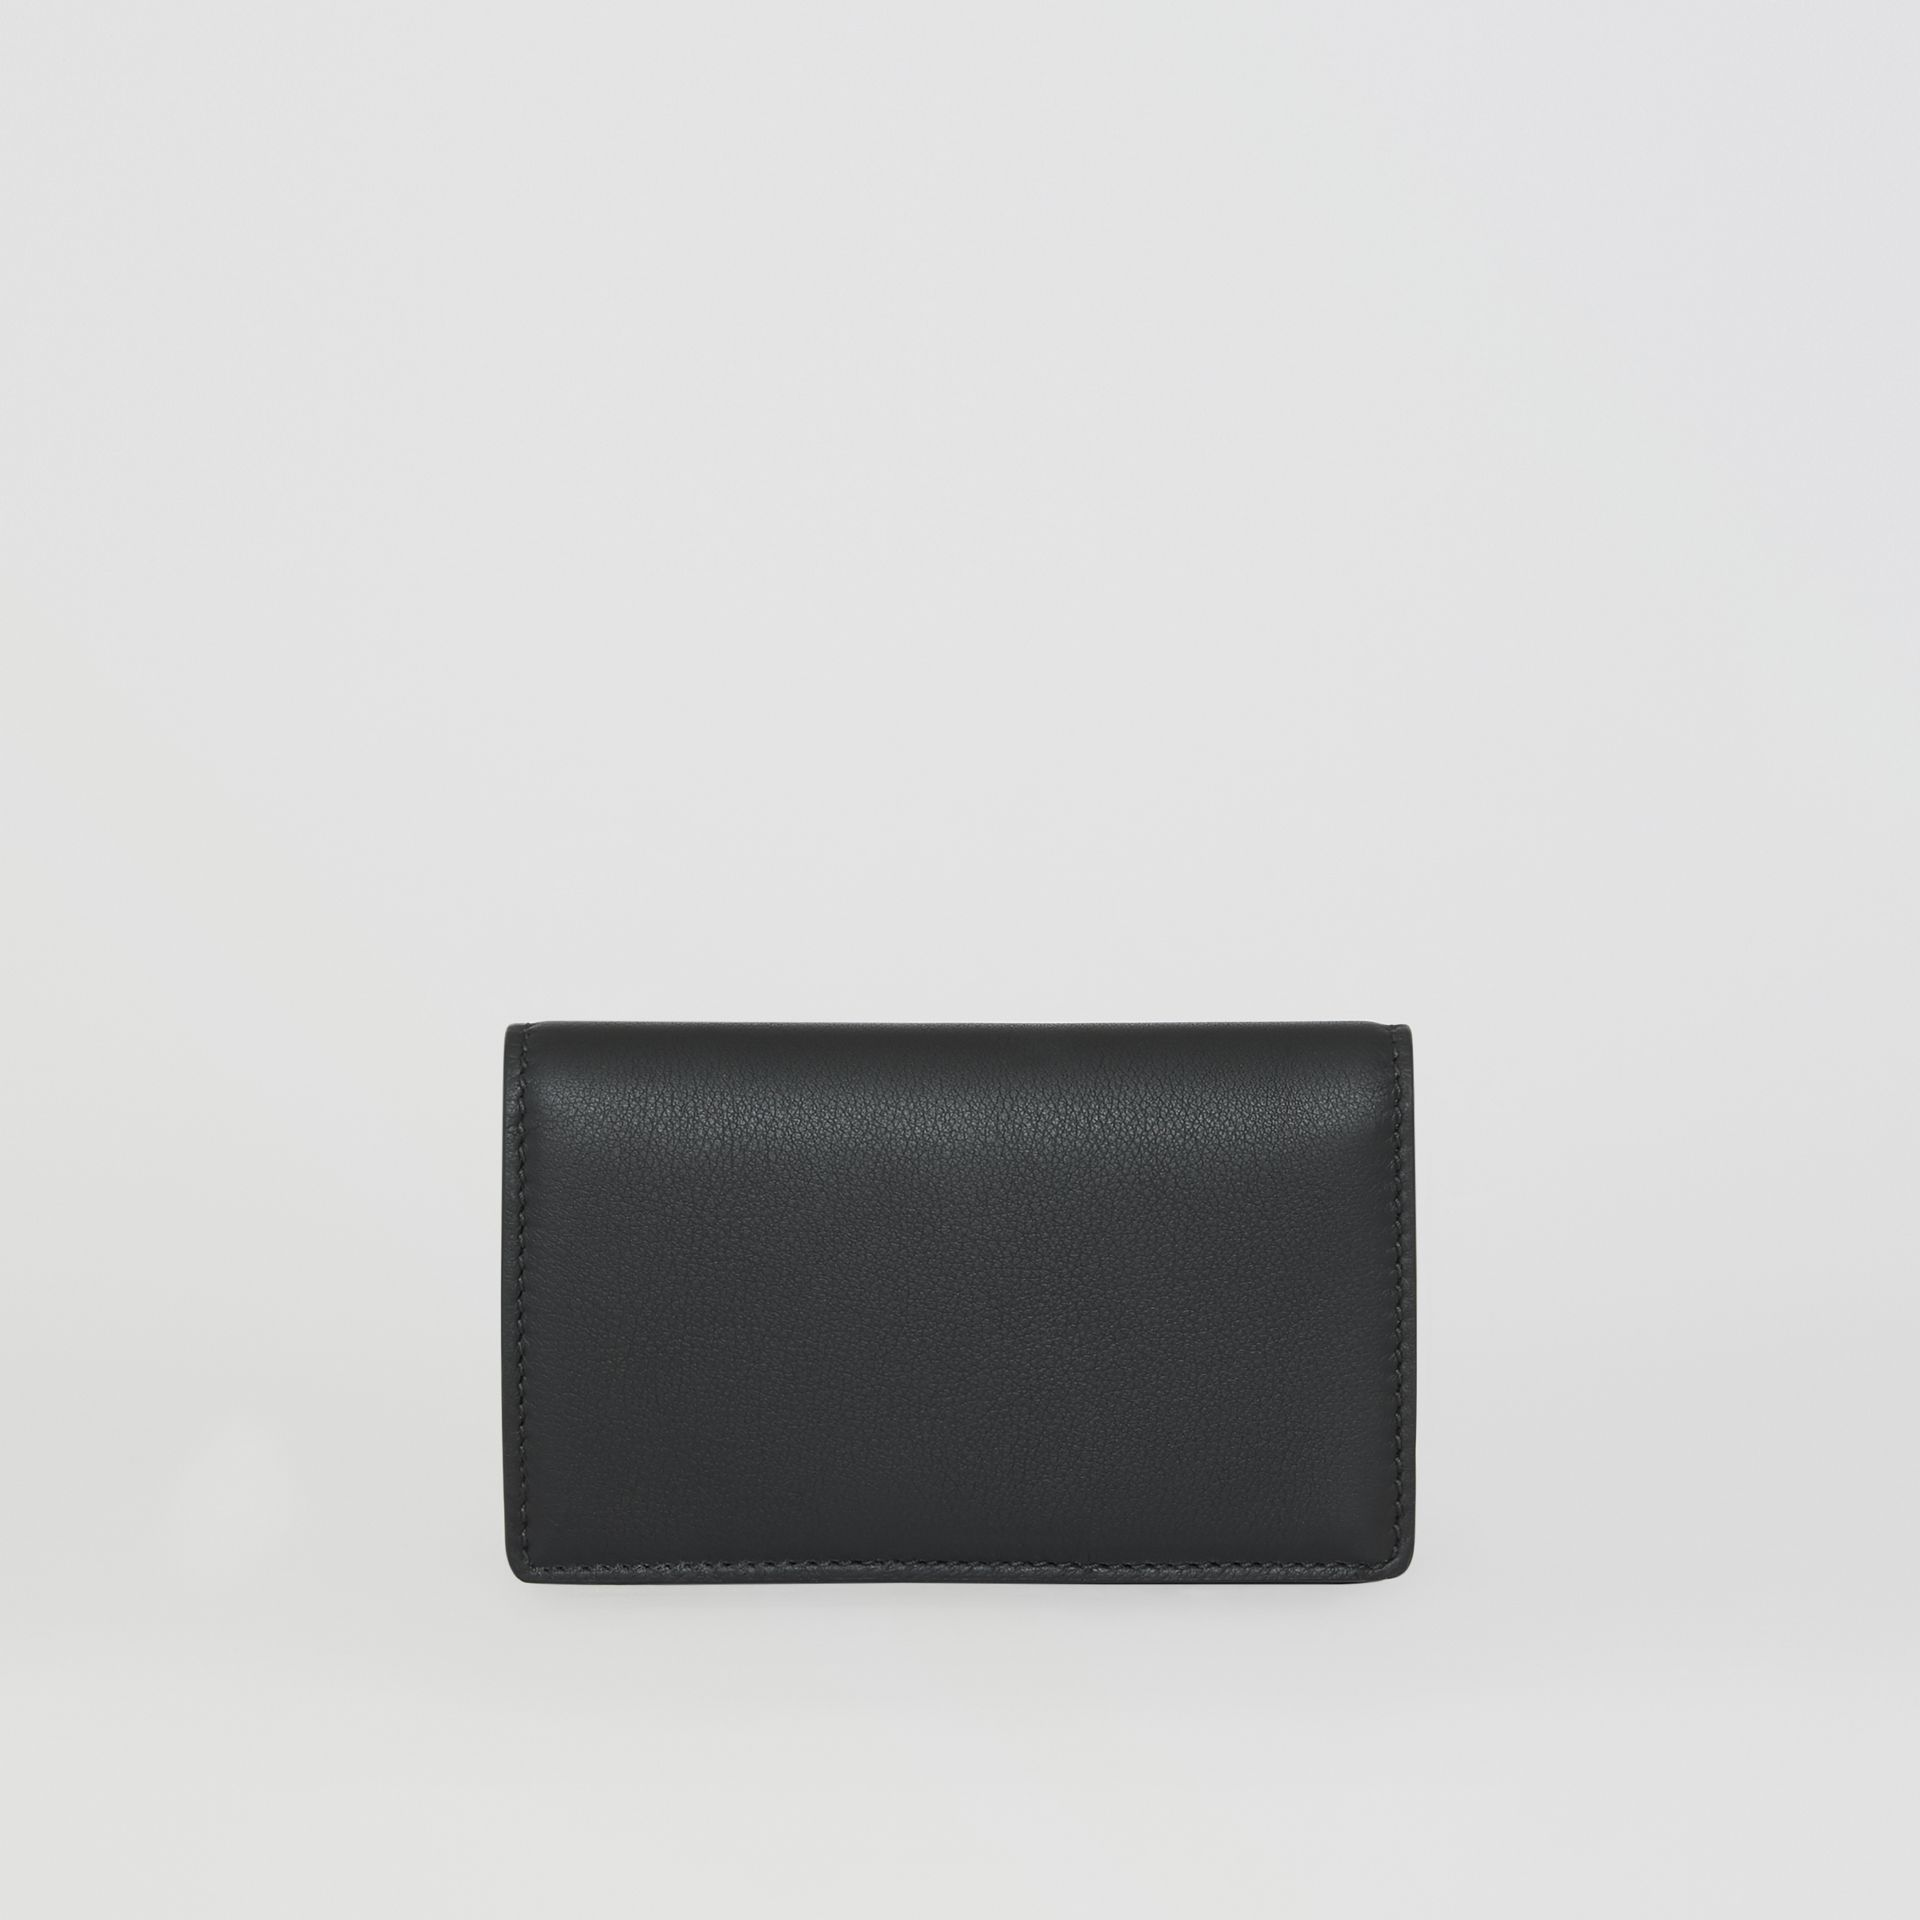 Small Embossed Crest Two-tone Leather Wallet in Black - Women | Burberry - gallery image 2